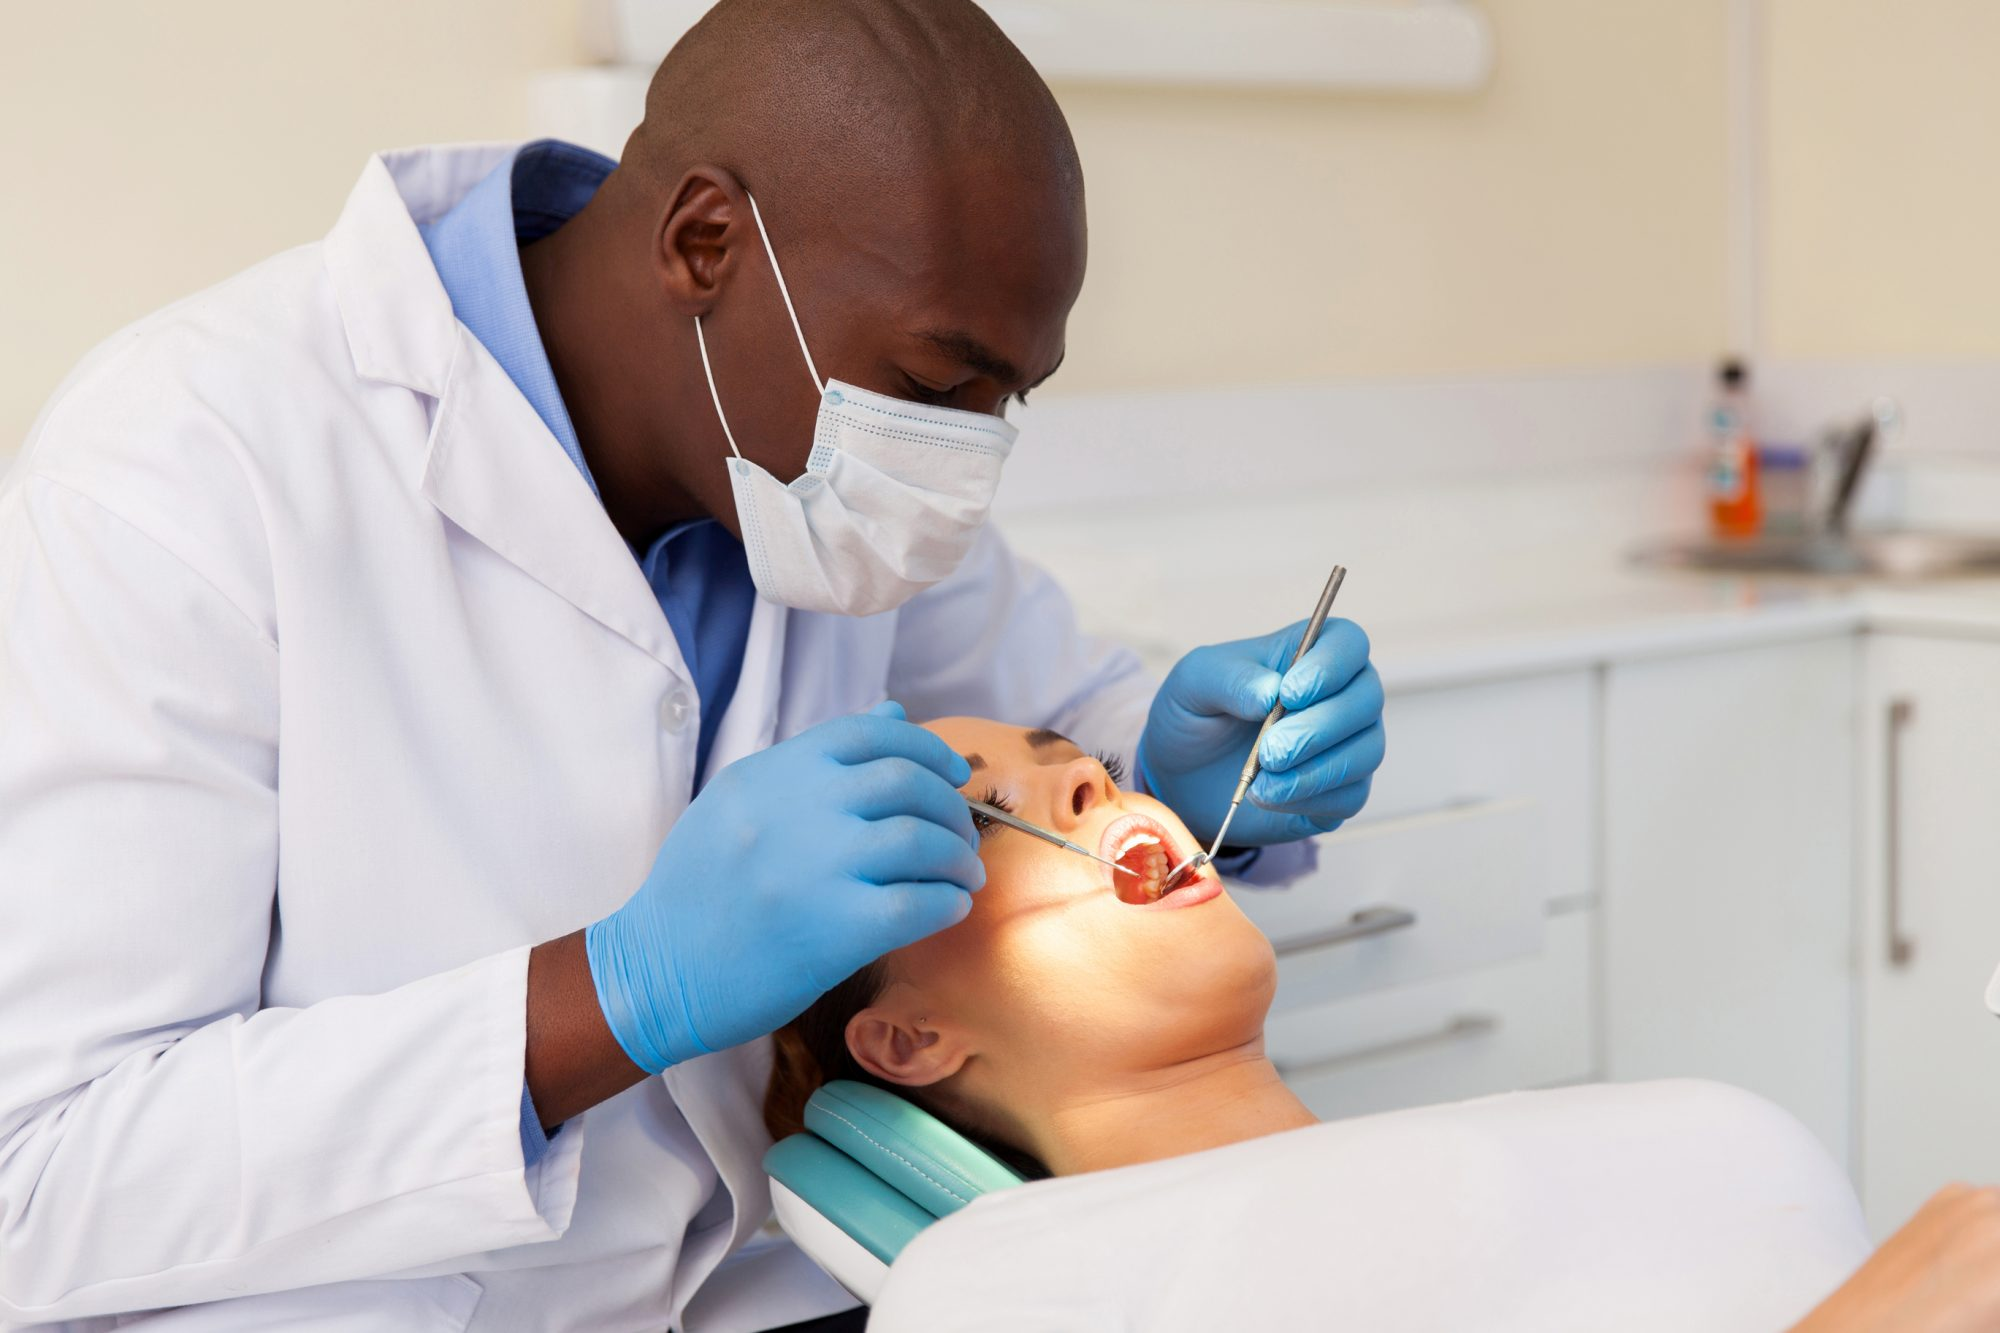 Dentistry during the pandemic: Is oral health still a priority?